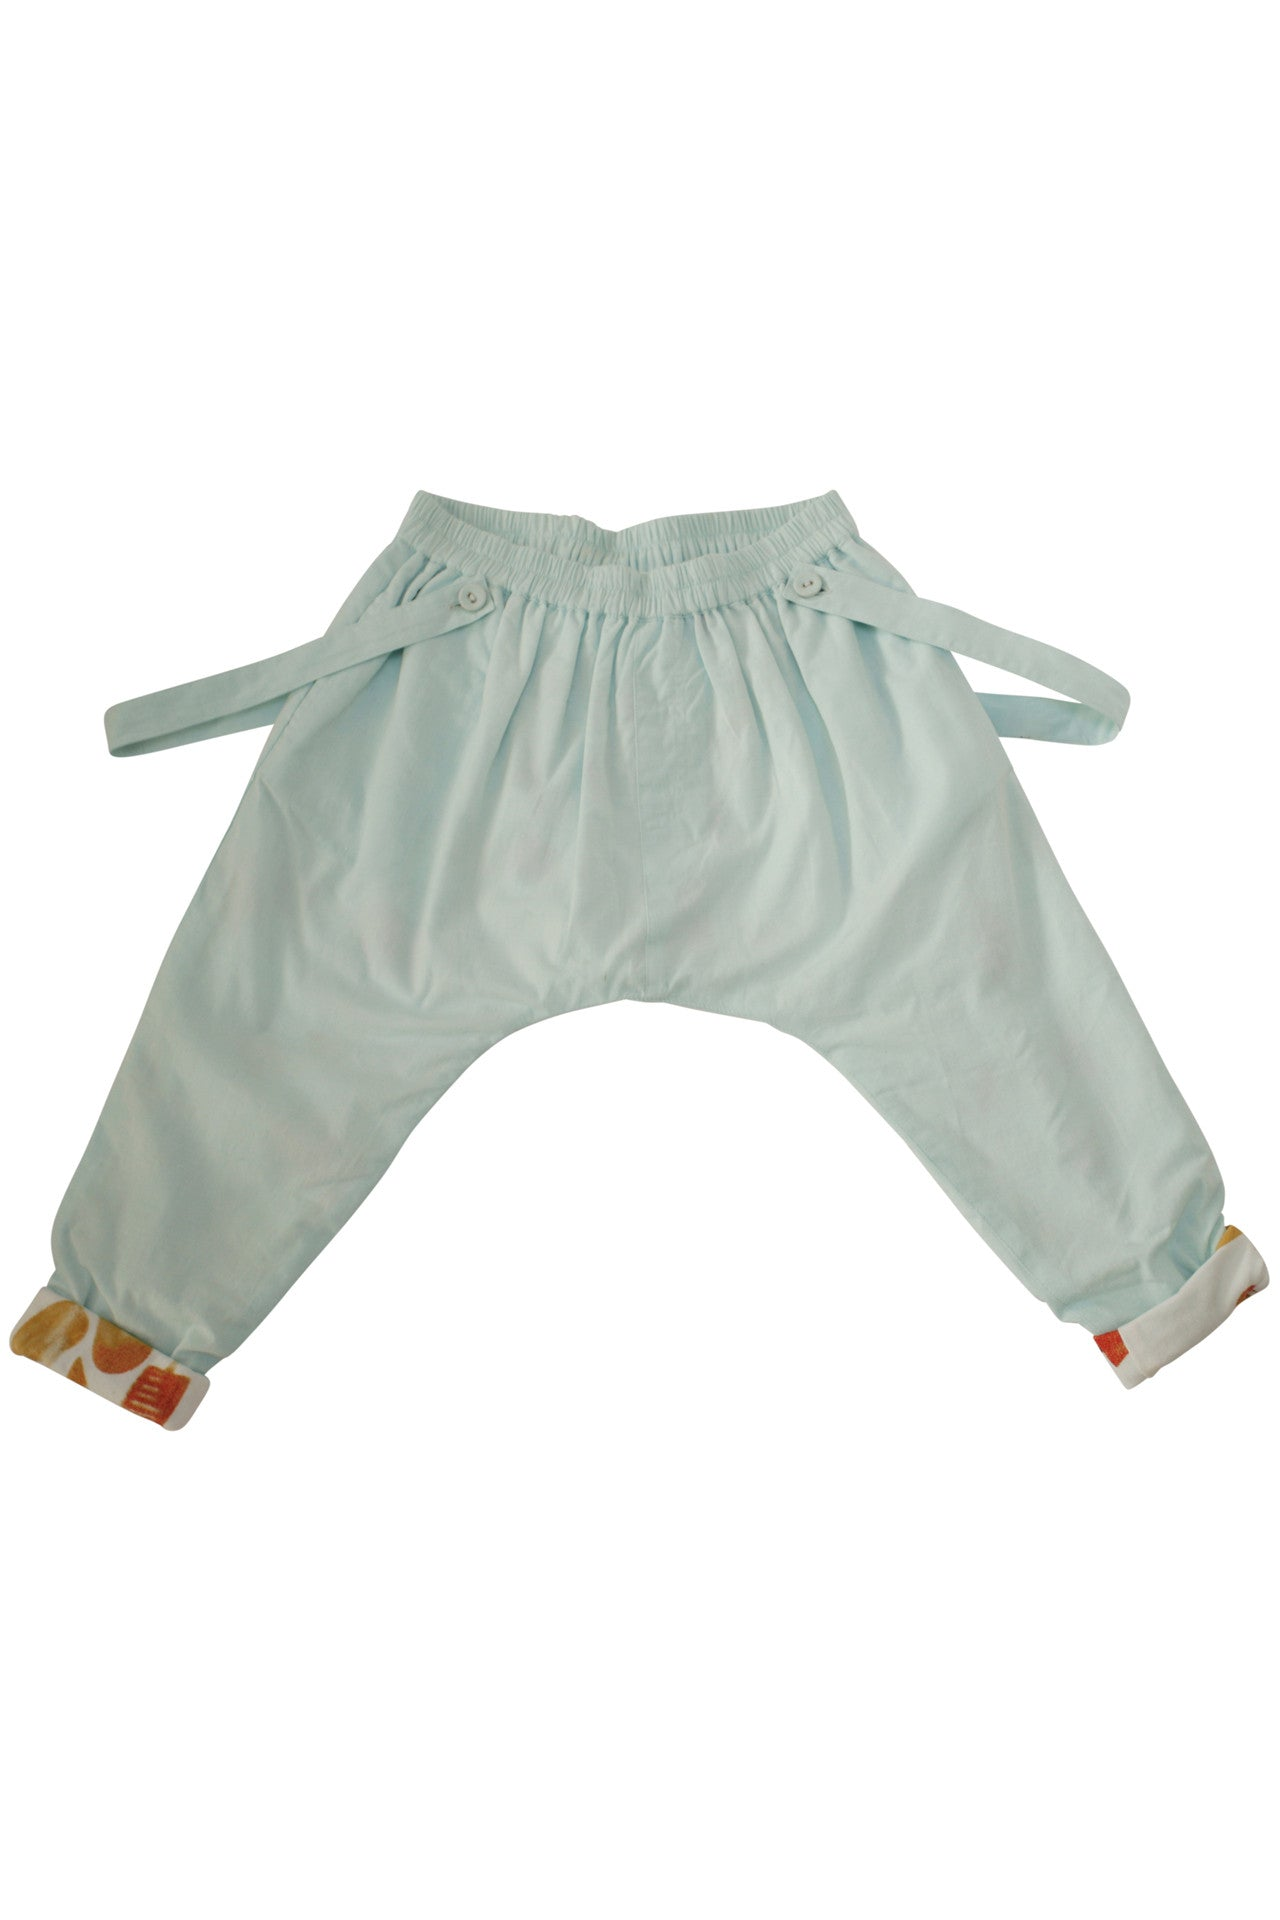 easy trouser with detachable suspenders